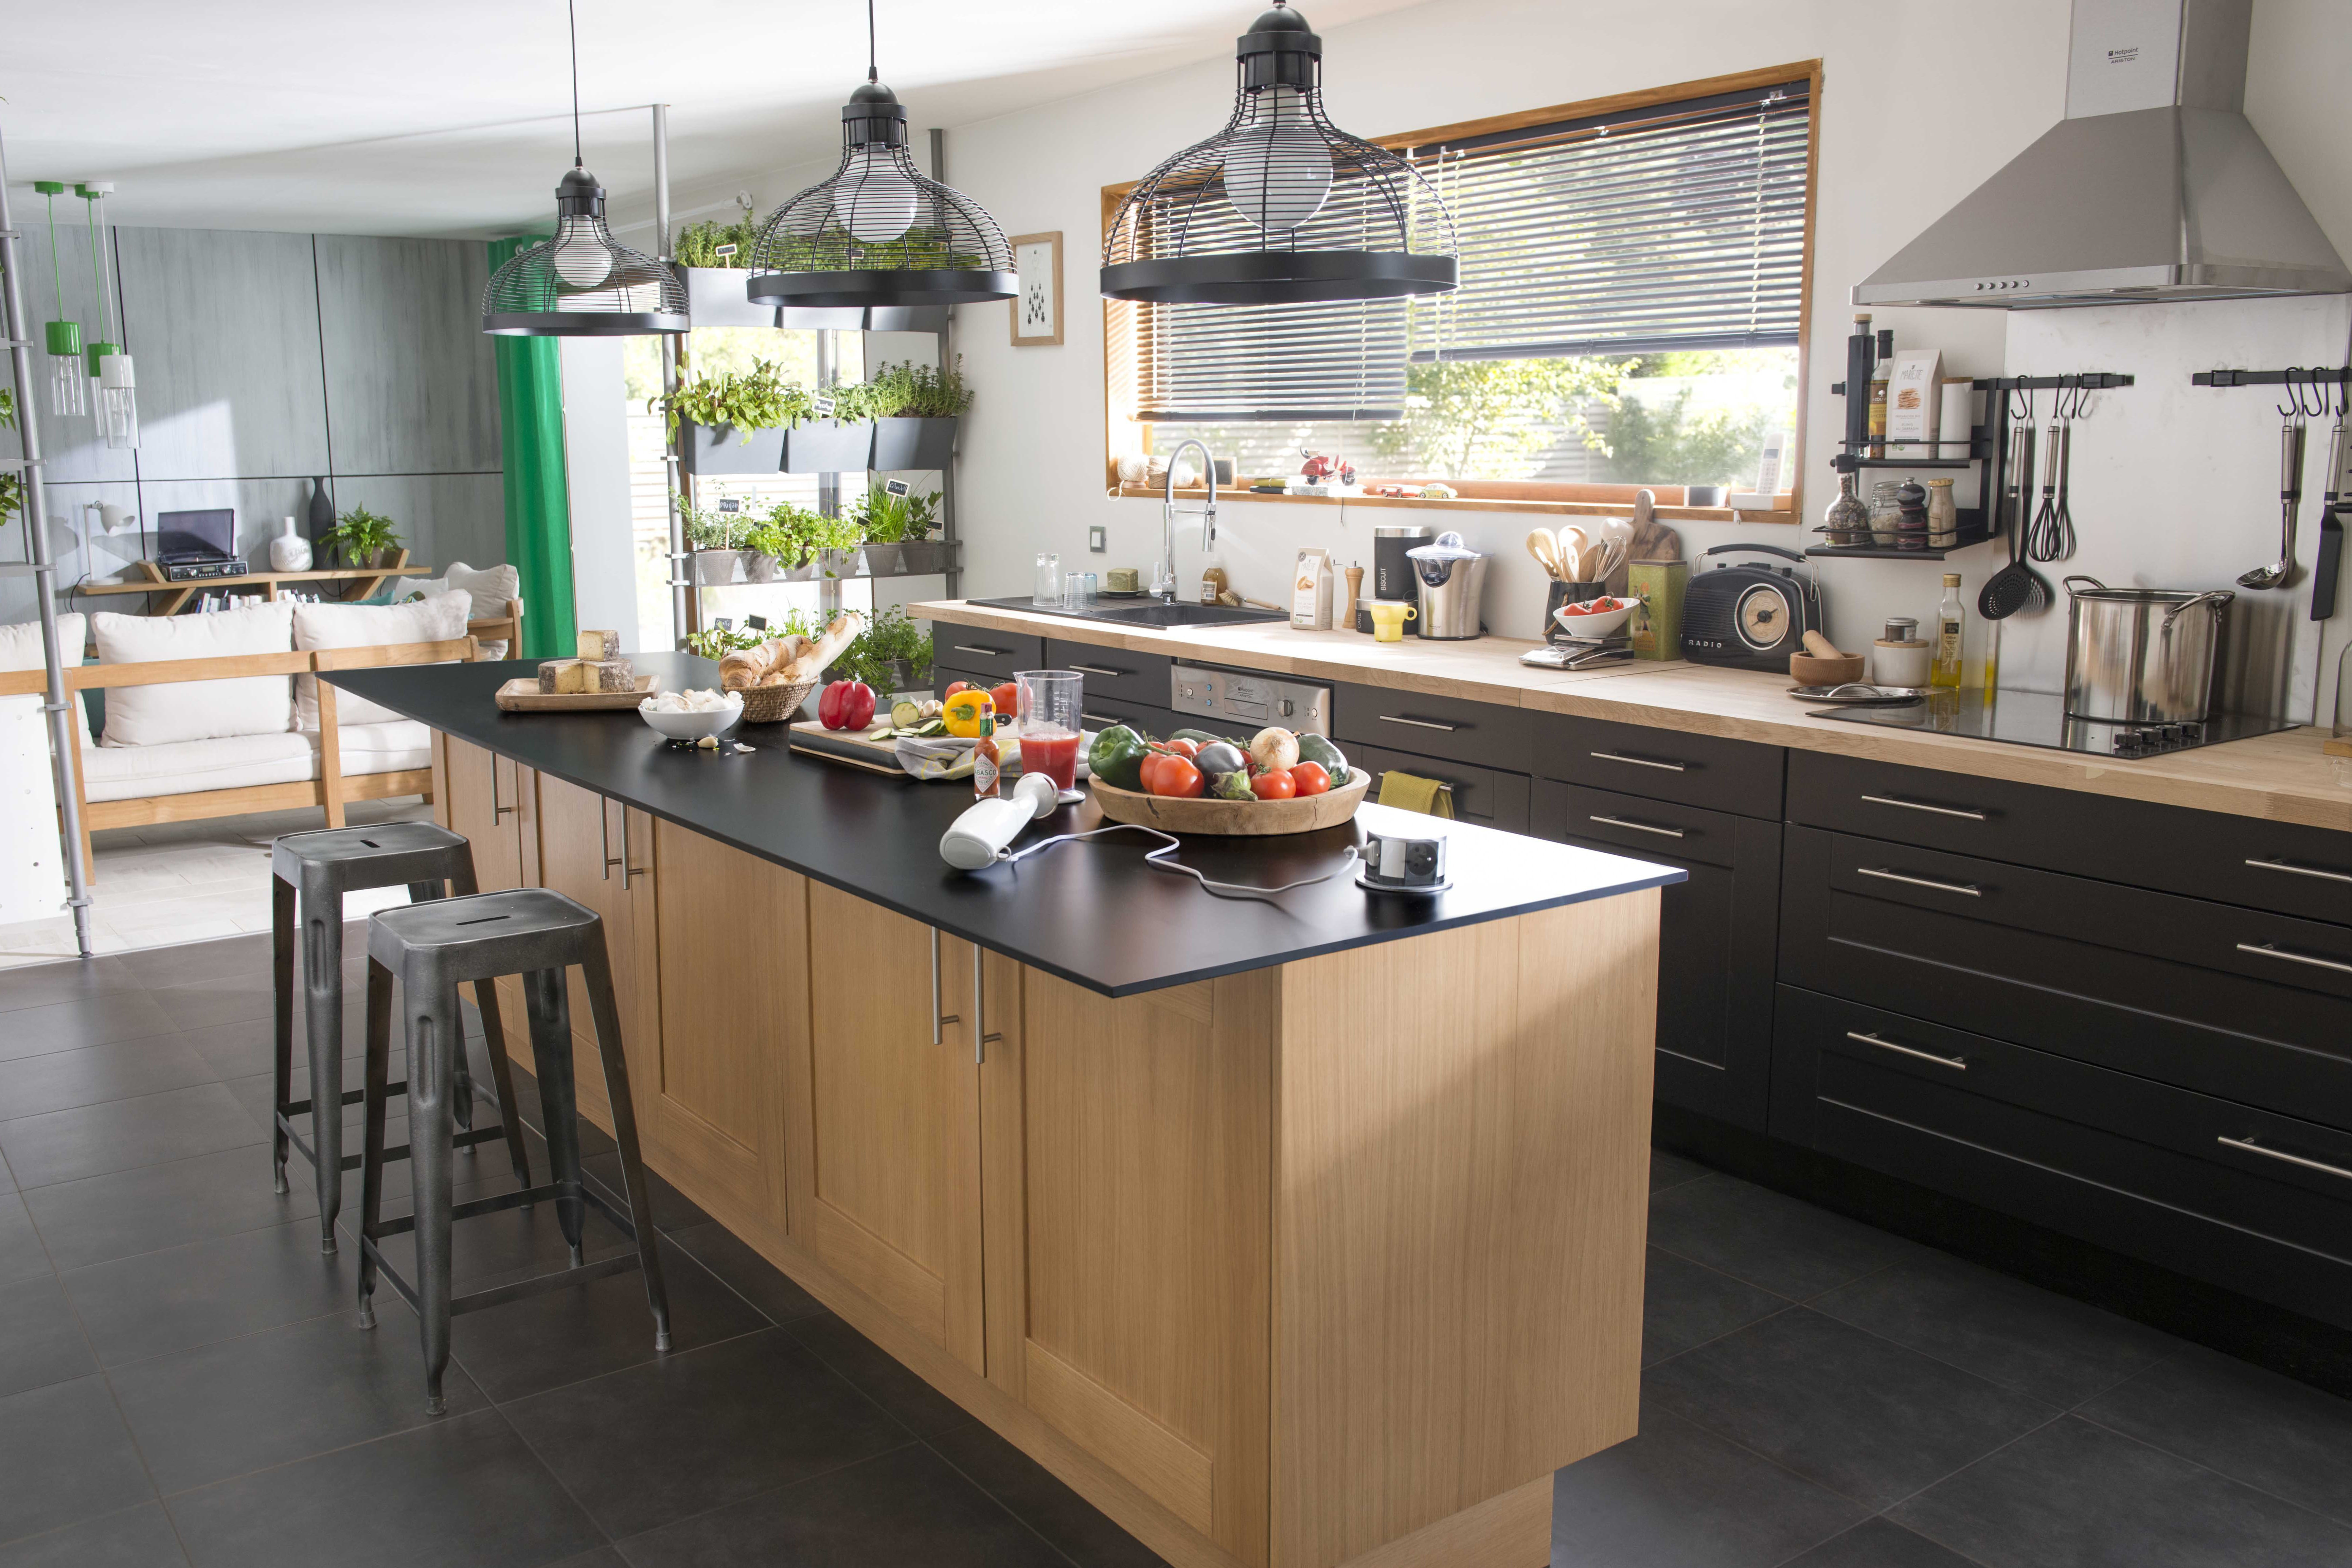 Cuisine Moderne Pays Idees De Decoration